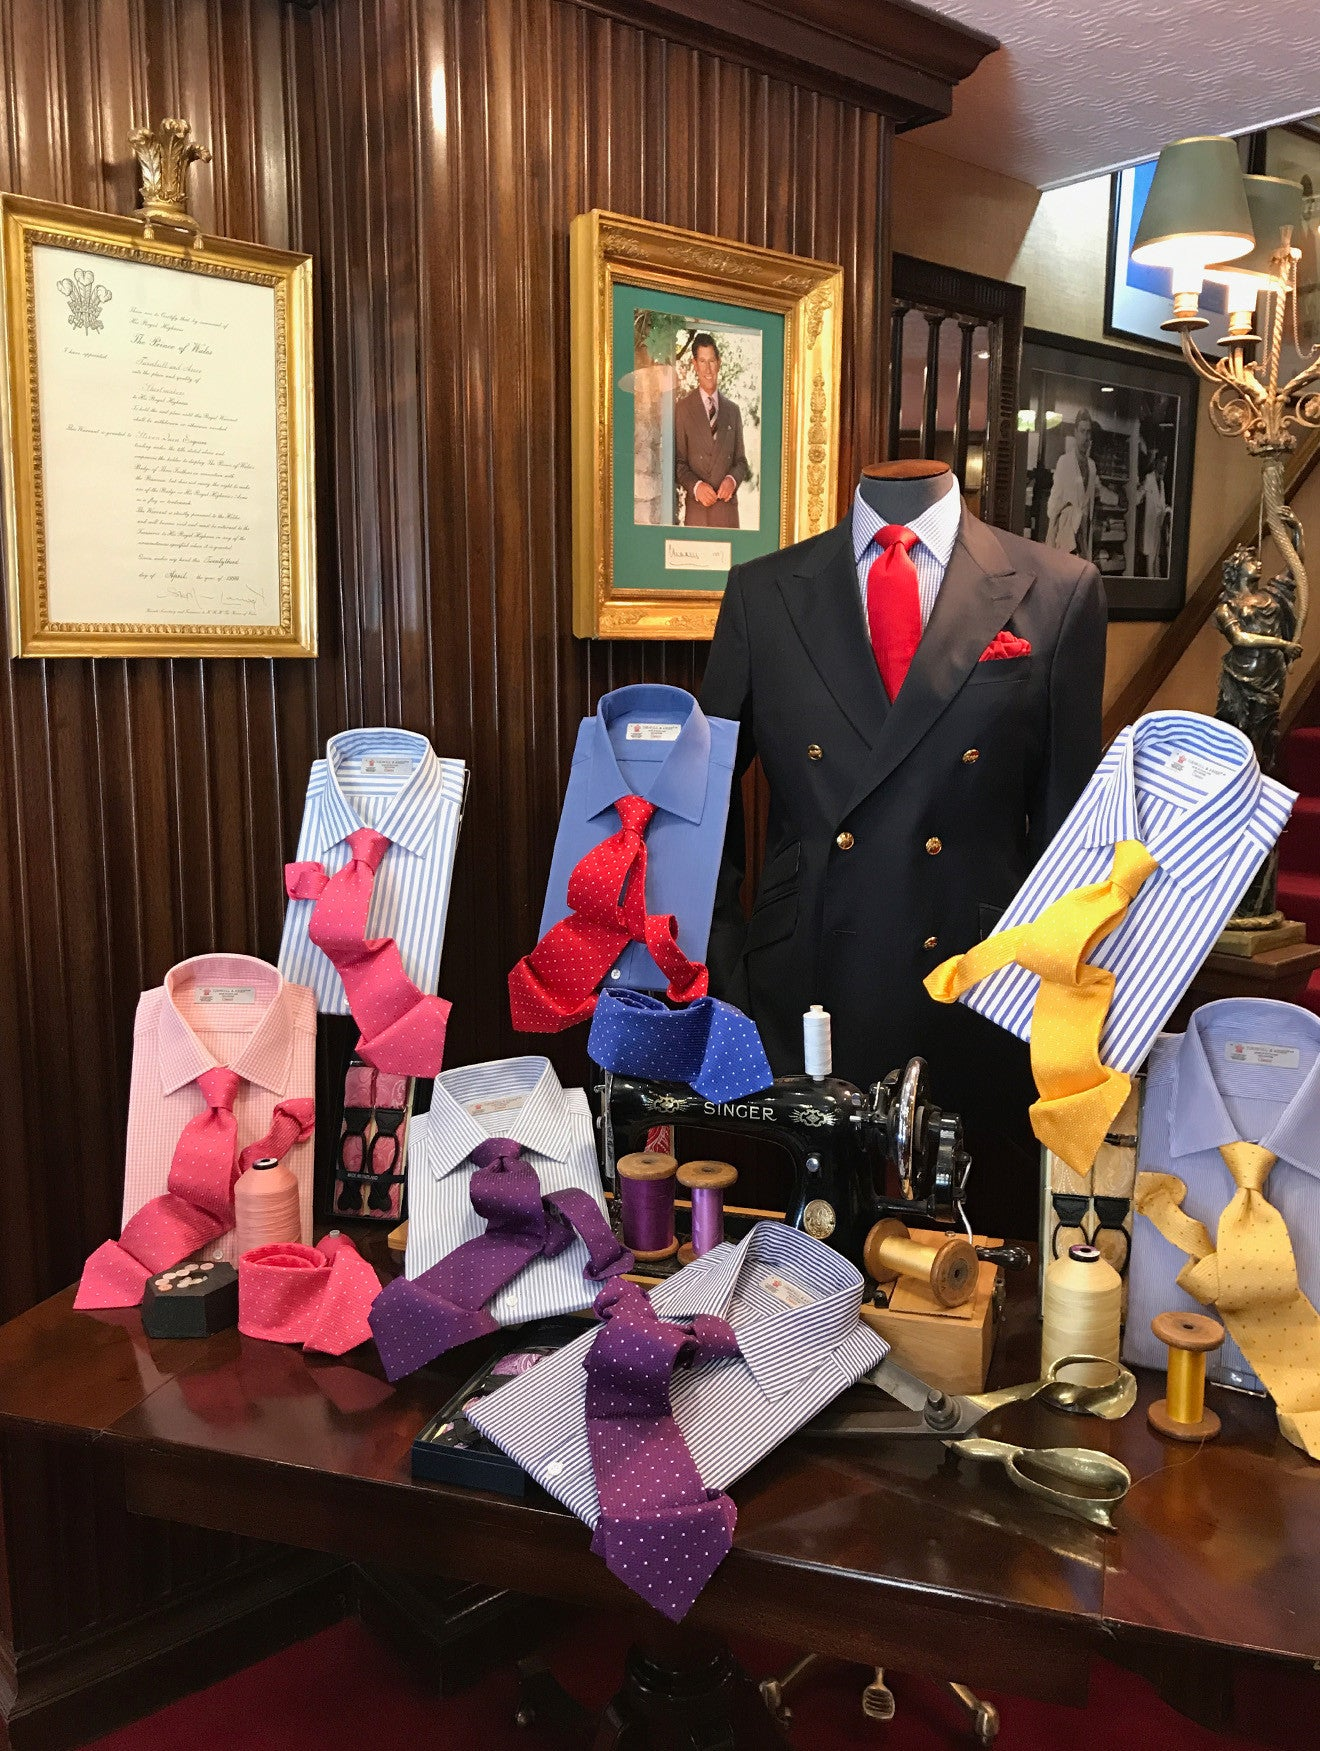 Turnbull and Asser Royal Warrants